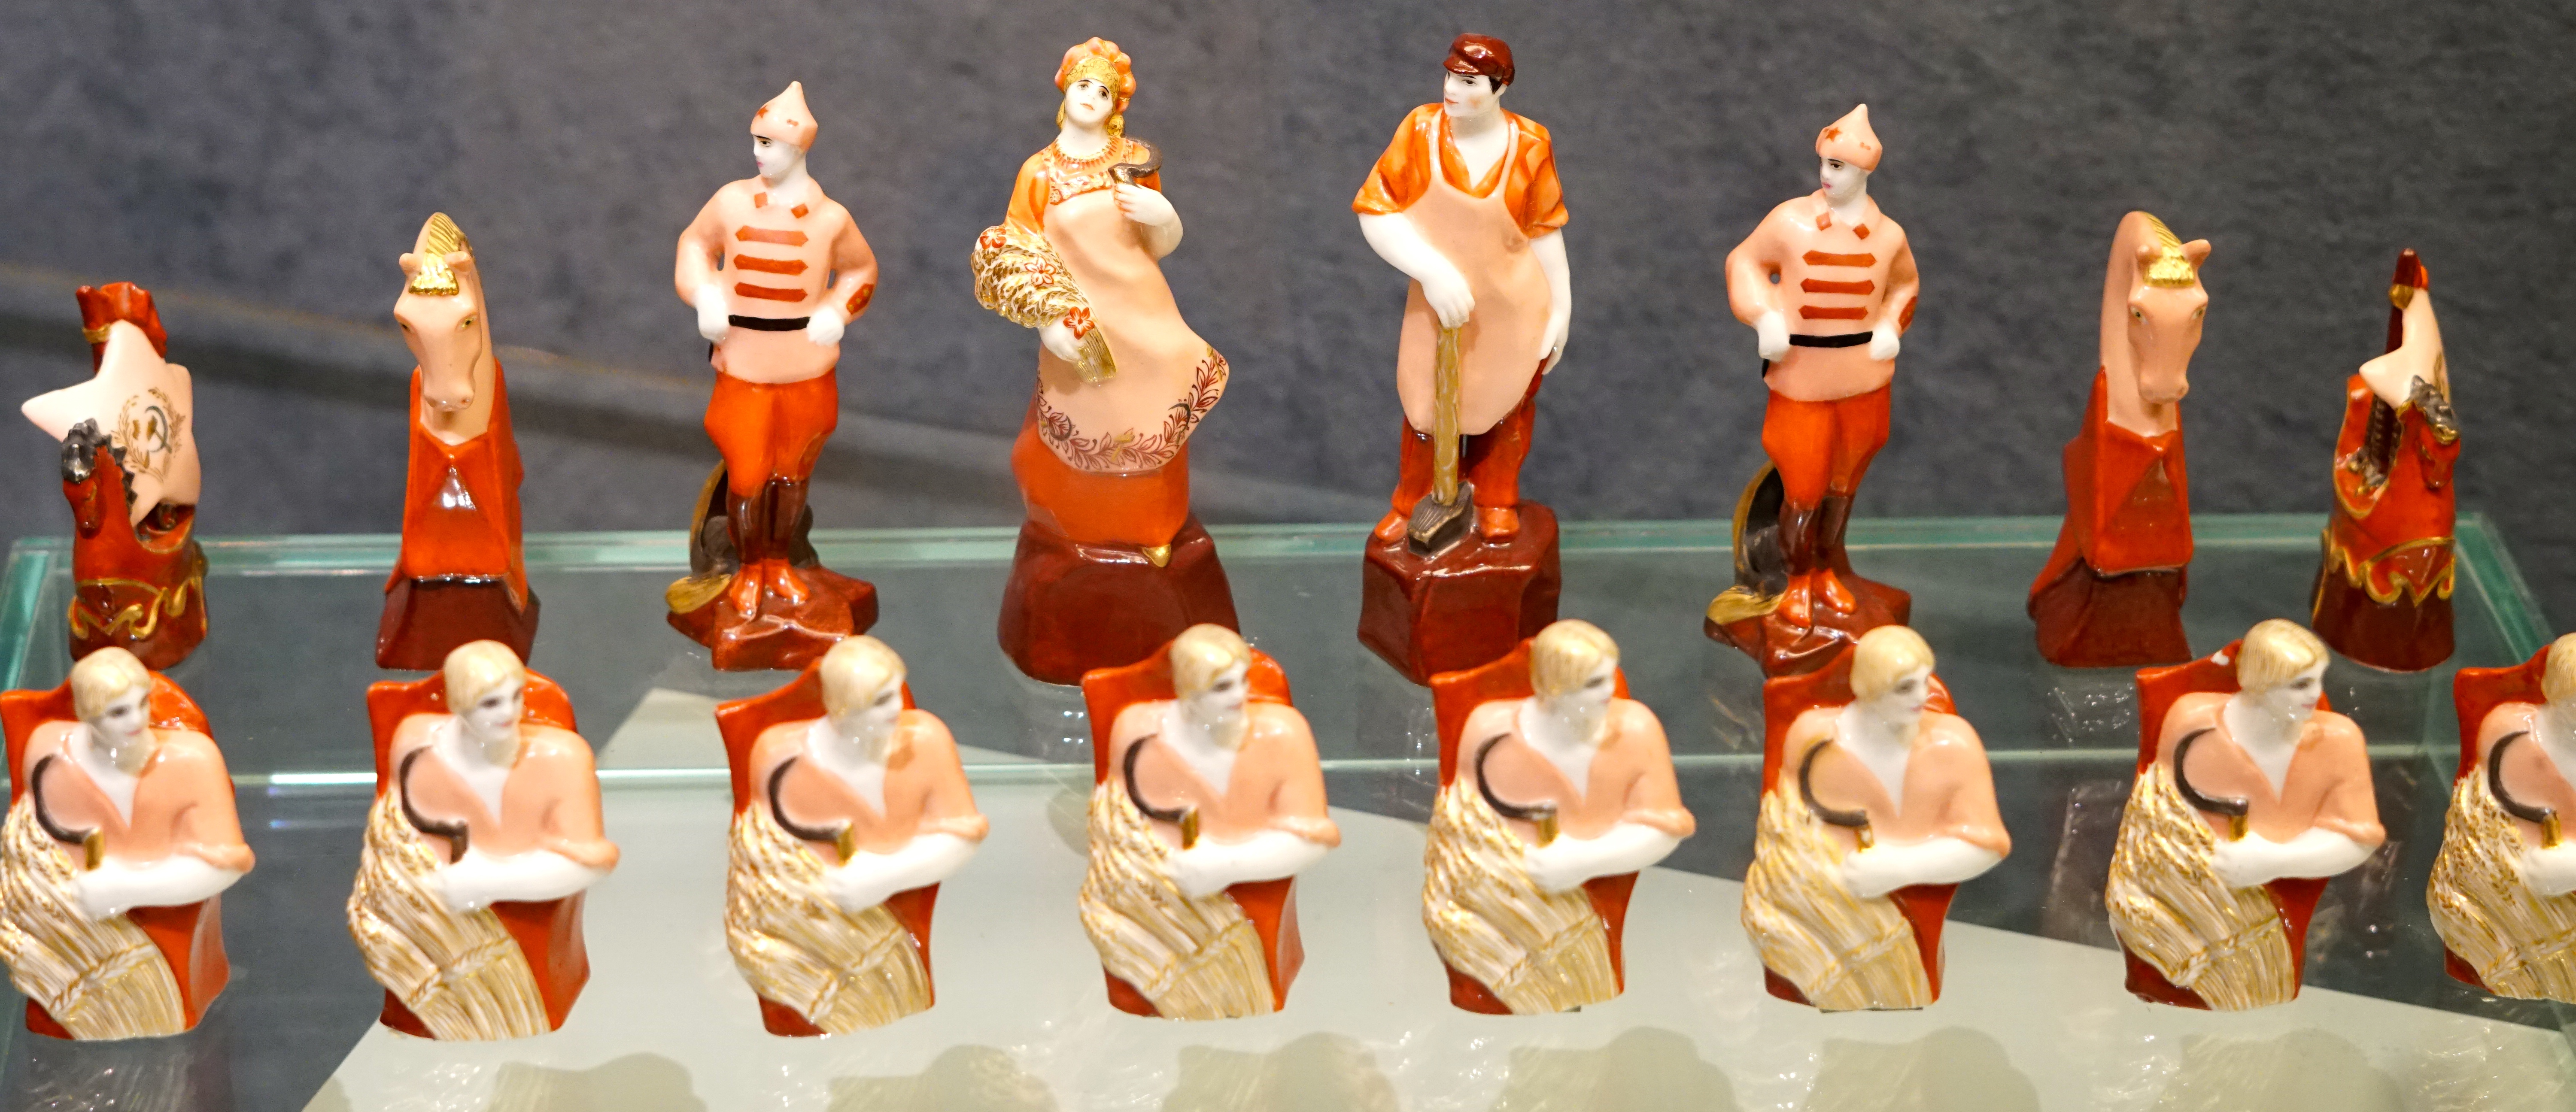 Porcelain of Soviet period - chess